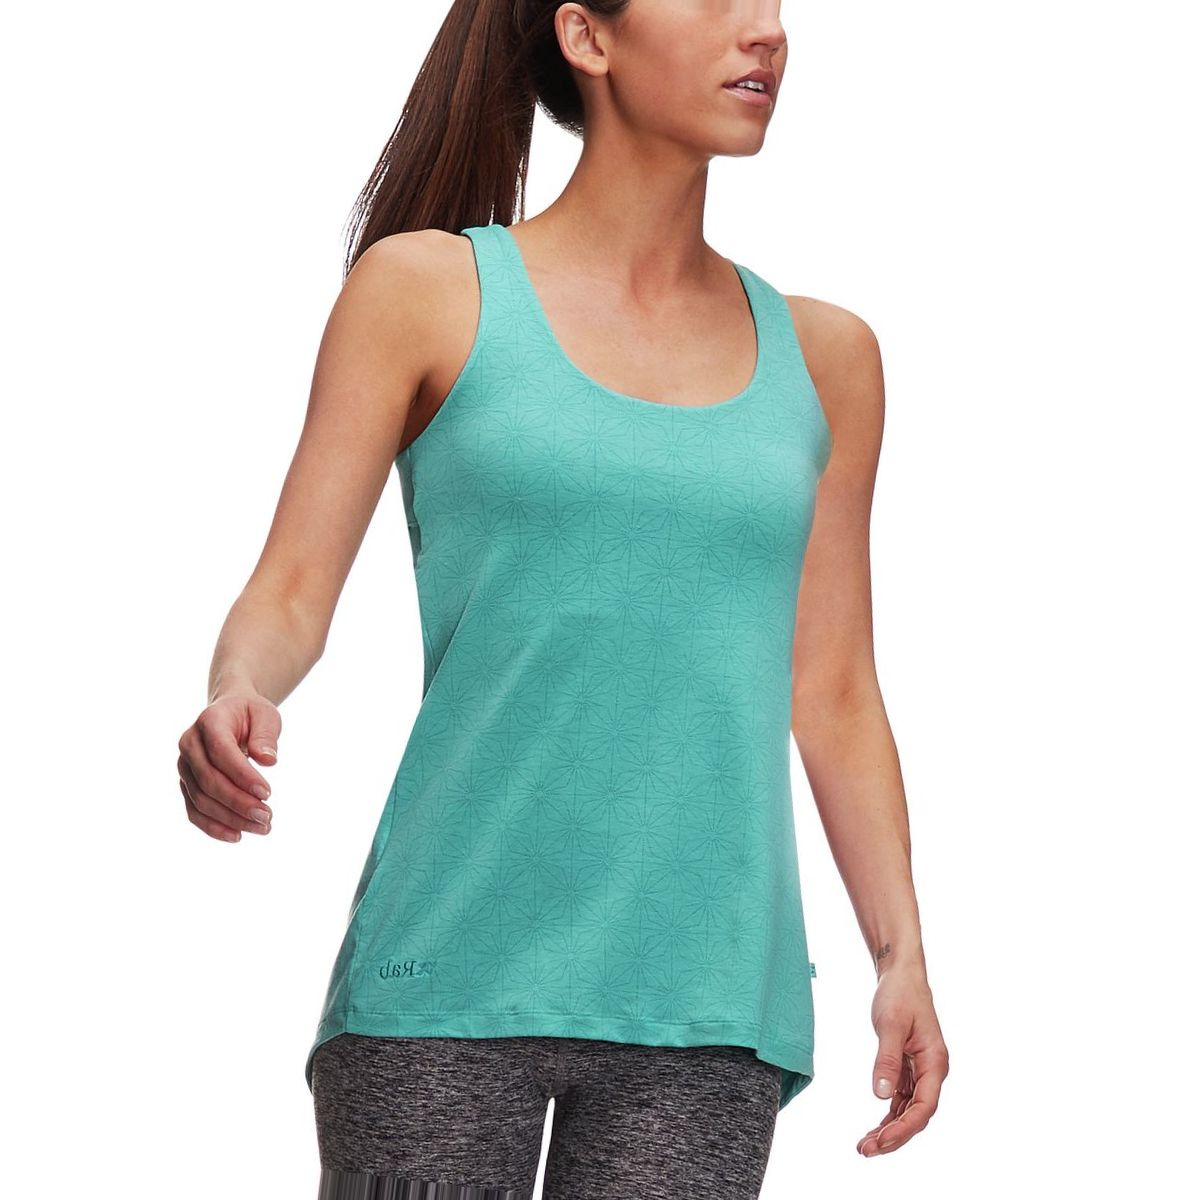 Rab Trance Tank Top - Women's